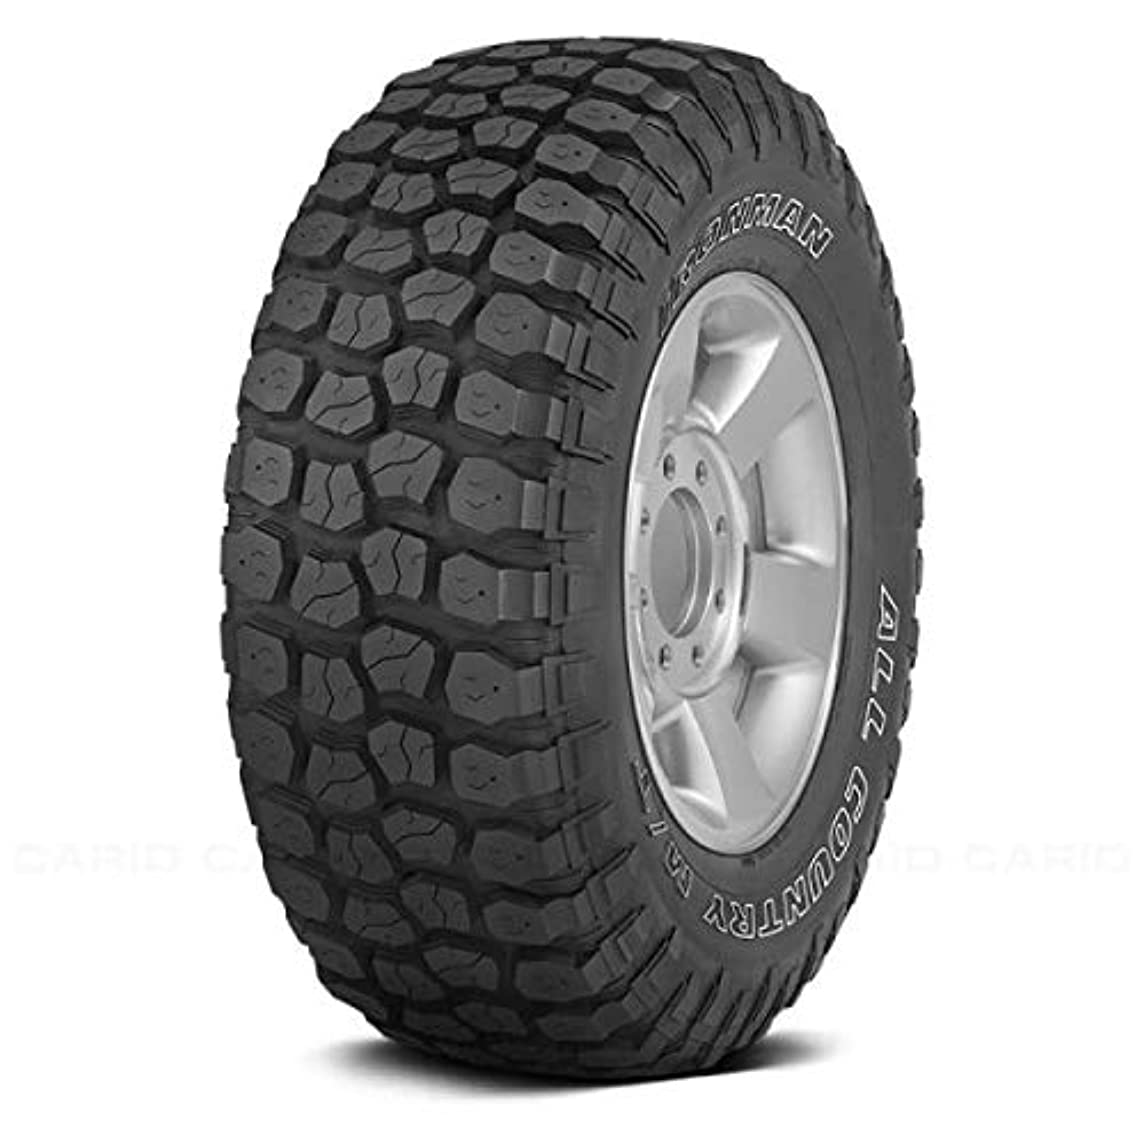 Ironman All All Country M/T all_ Season Radial Tire-LT285/70R17 121Q